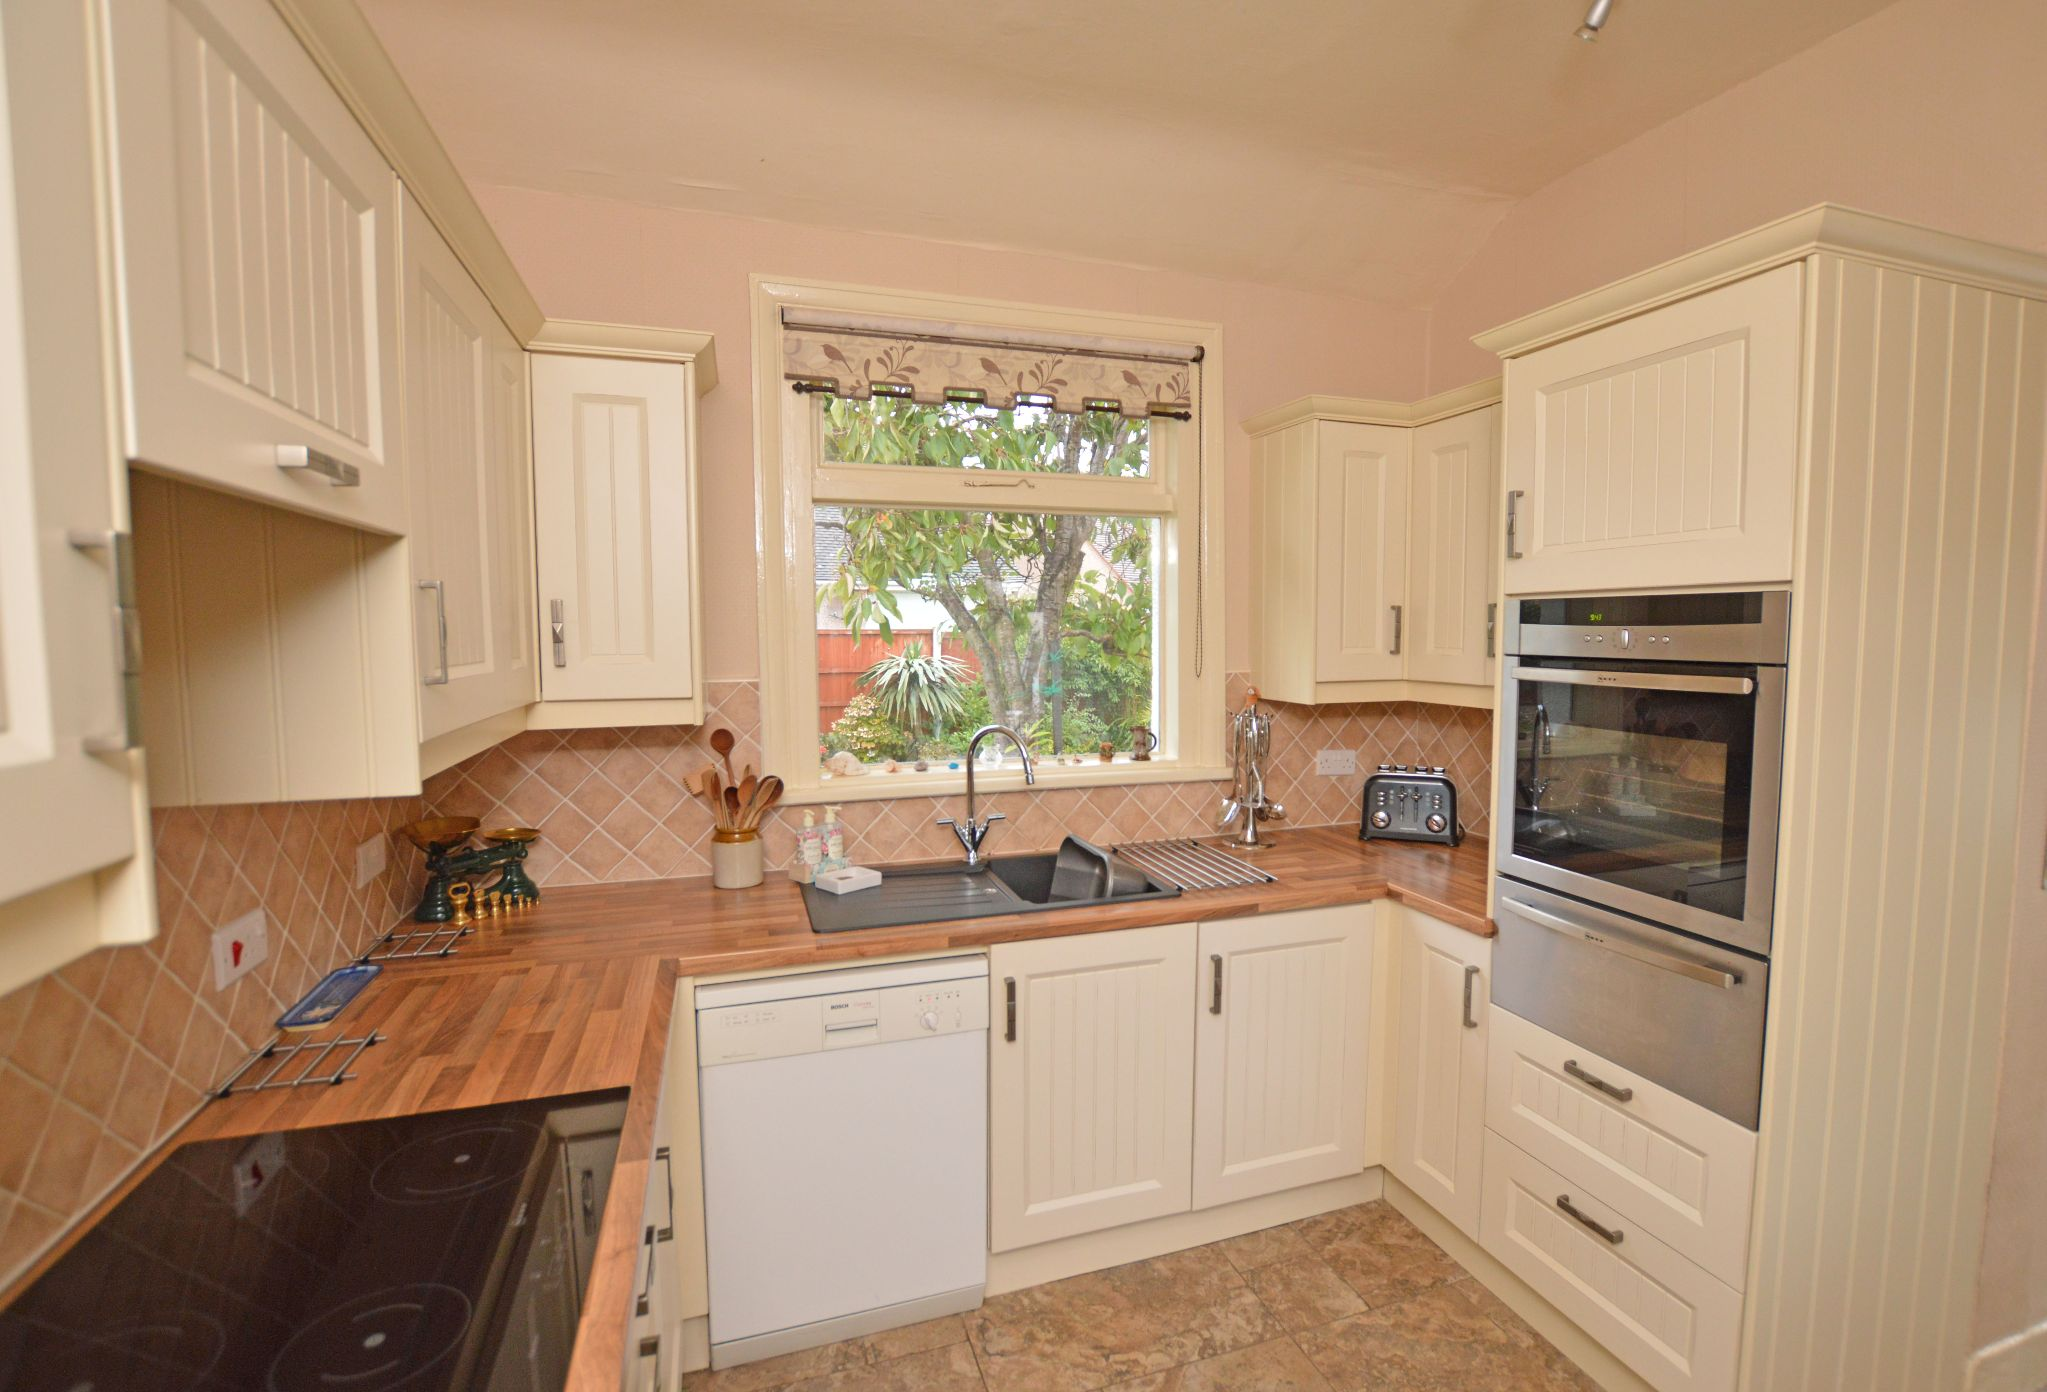 4 bedroom detached bungalow For Sale in Abergele - Kitchen